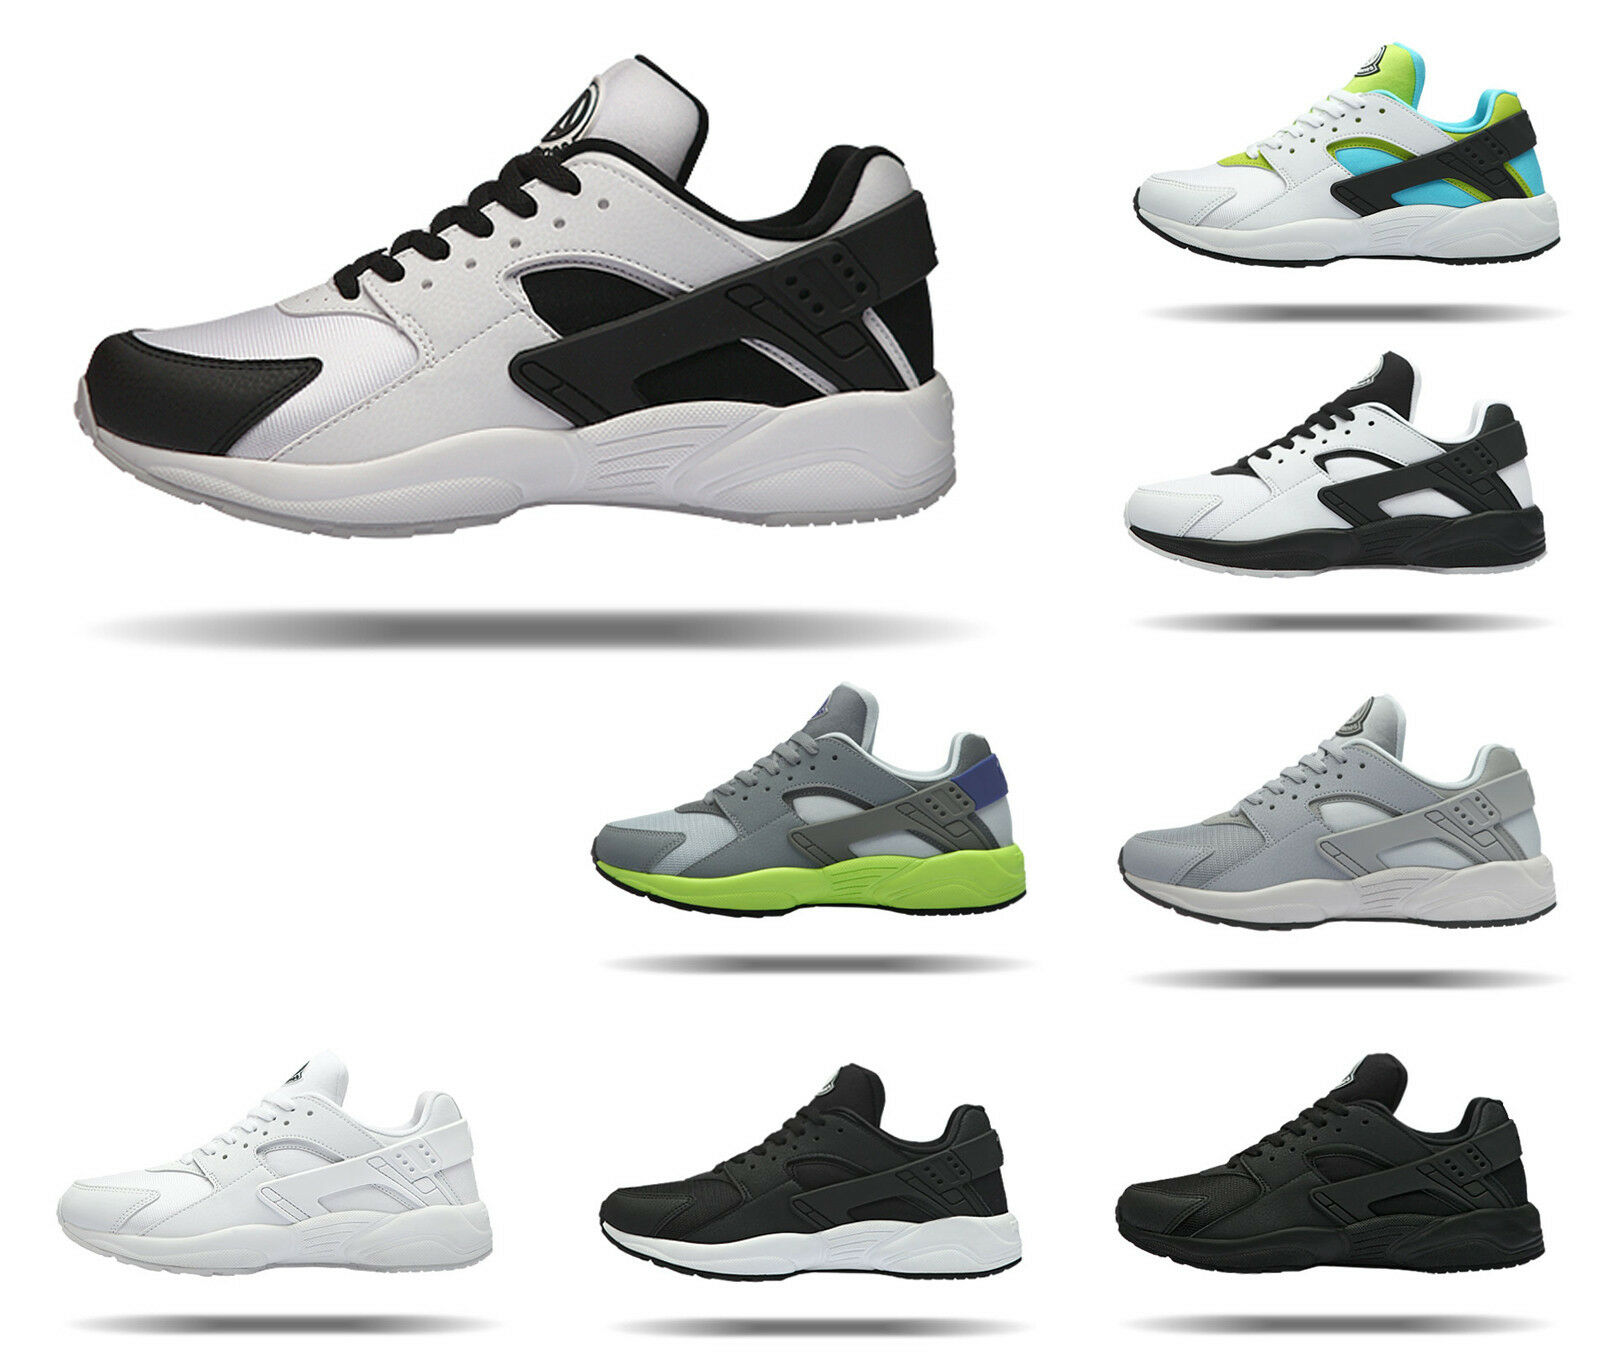 New Paperplanes Sports Running Trainig Comfort Athletic Schuhes_PP1358 Schuhes_PP1358 Athletic Korea made cc824a